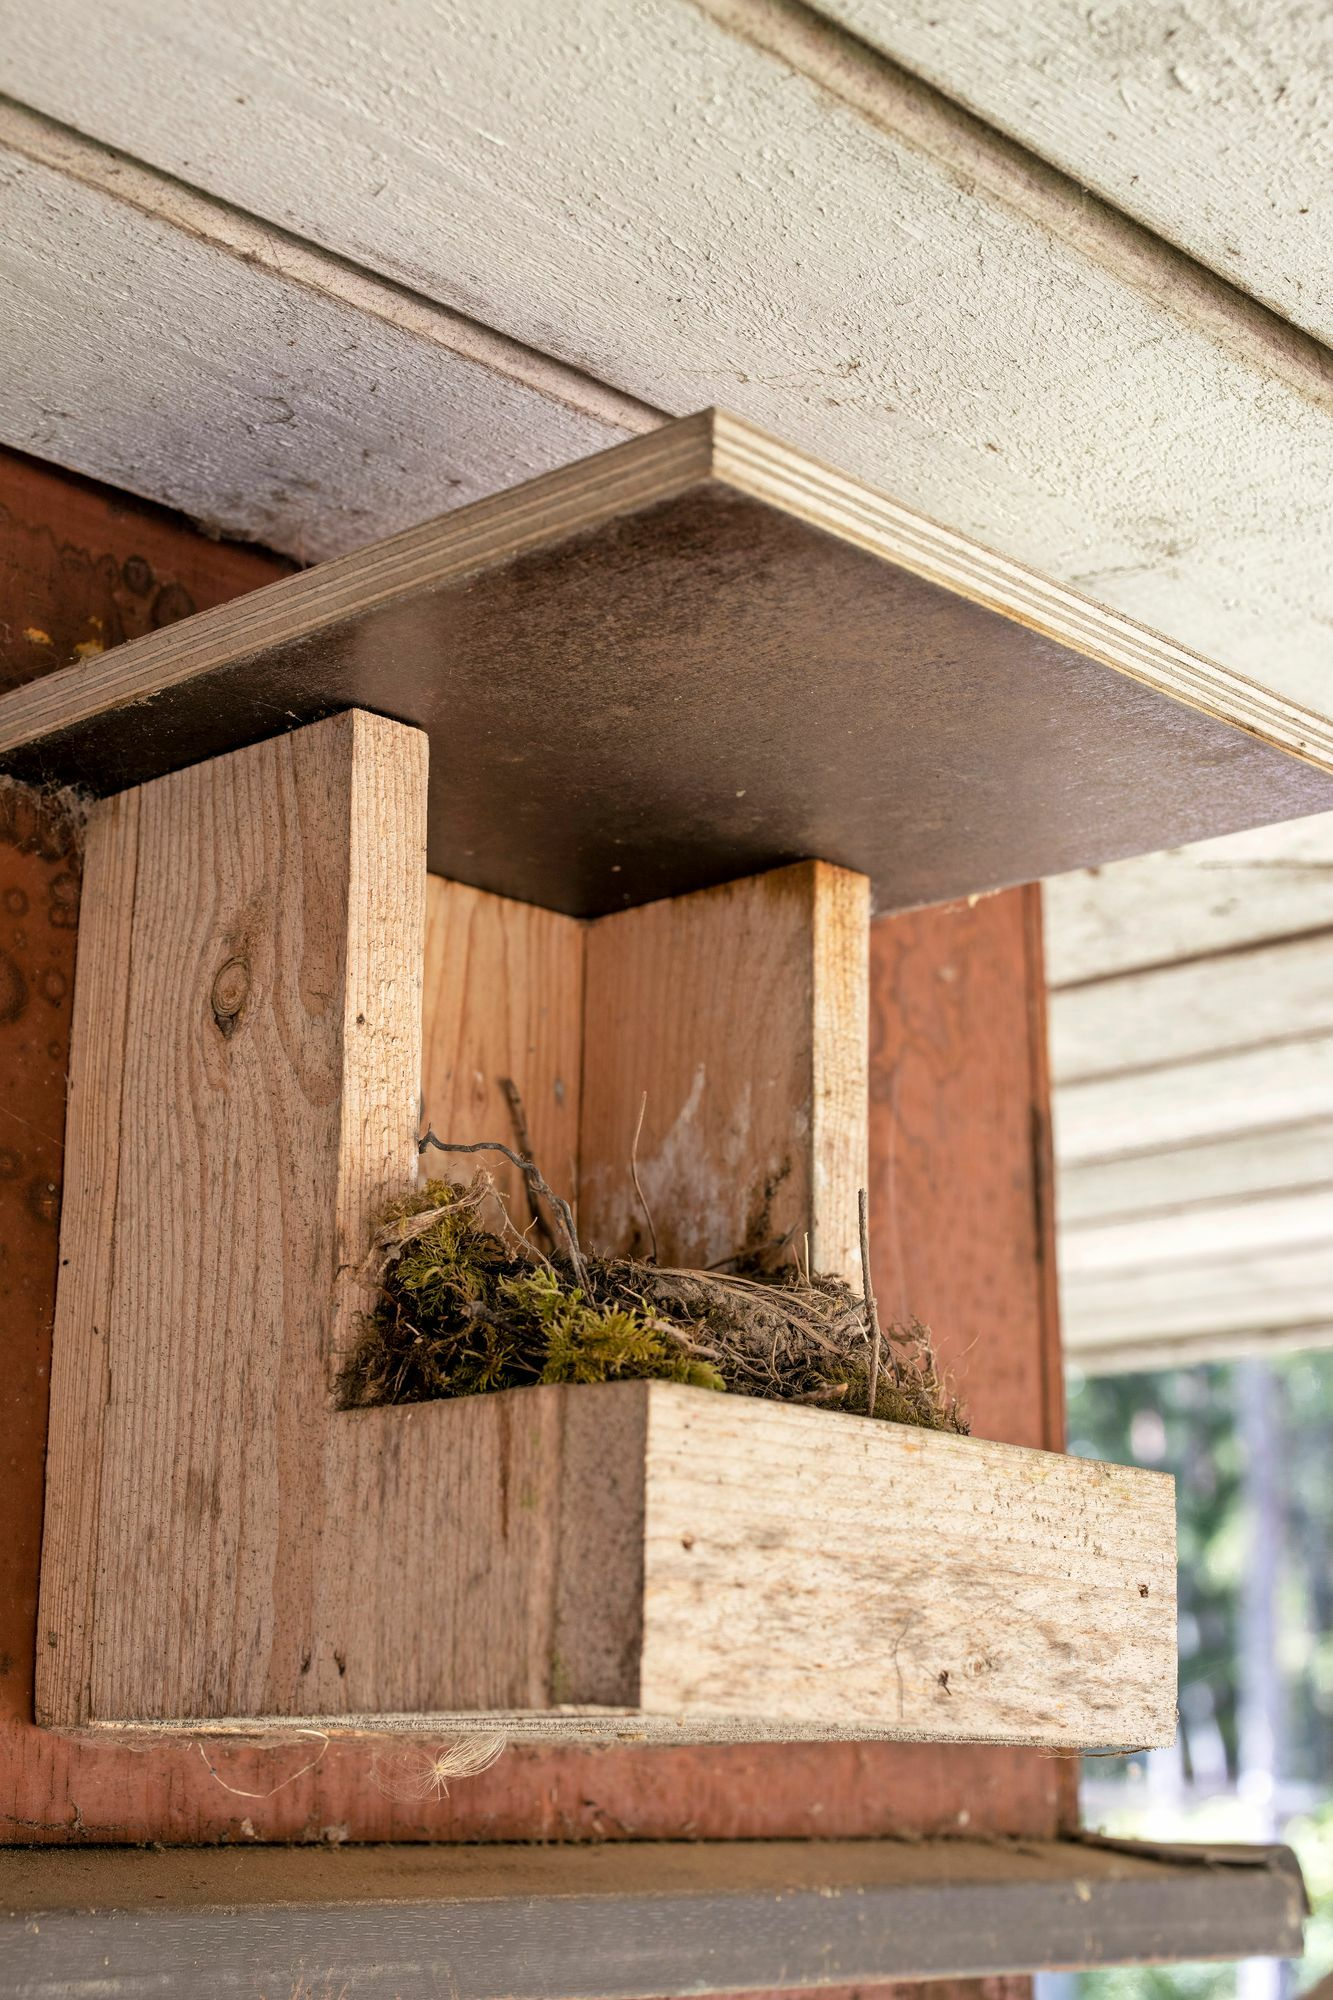 The maintenance of the birdhouse includes the removal of old nest fillings.  The open bowl is hung on the wall of the building under the eaves.  It is suitable for dreadlocks.